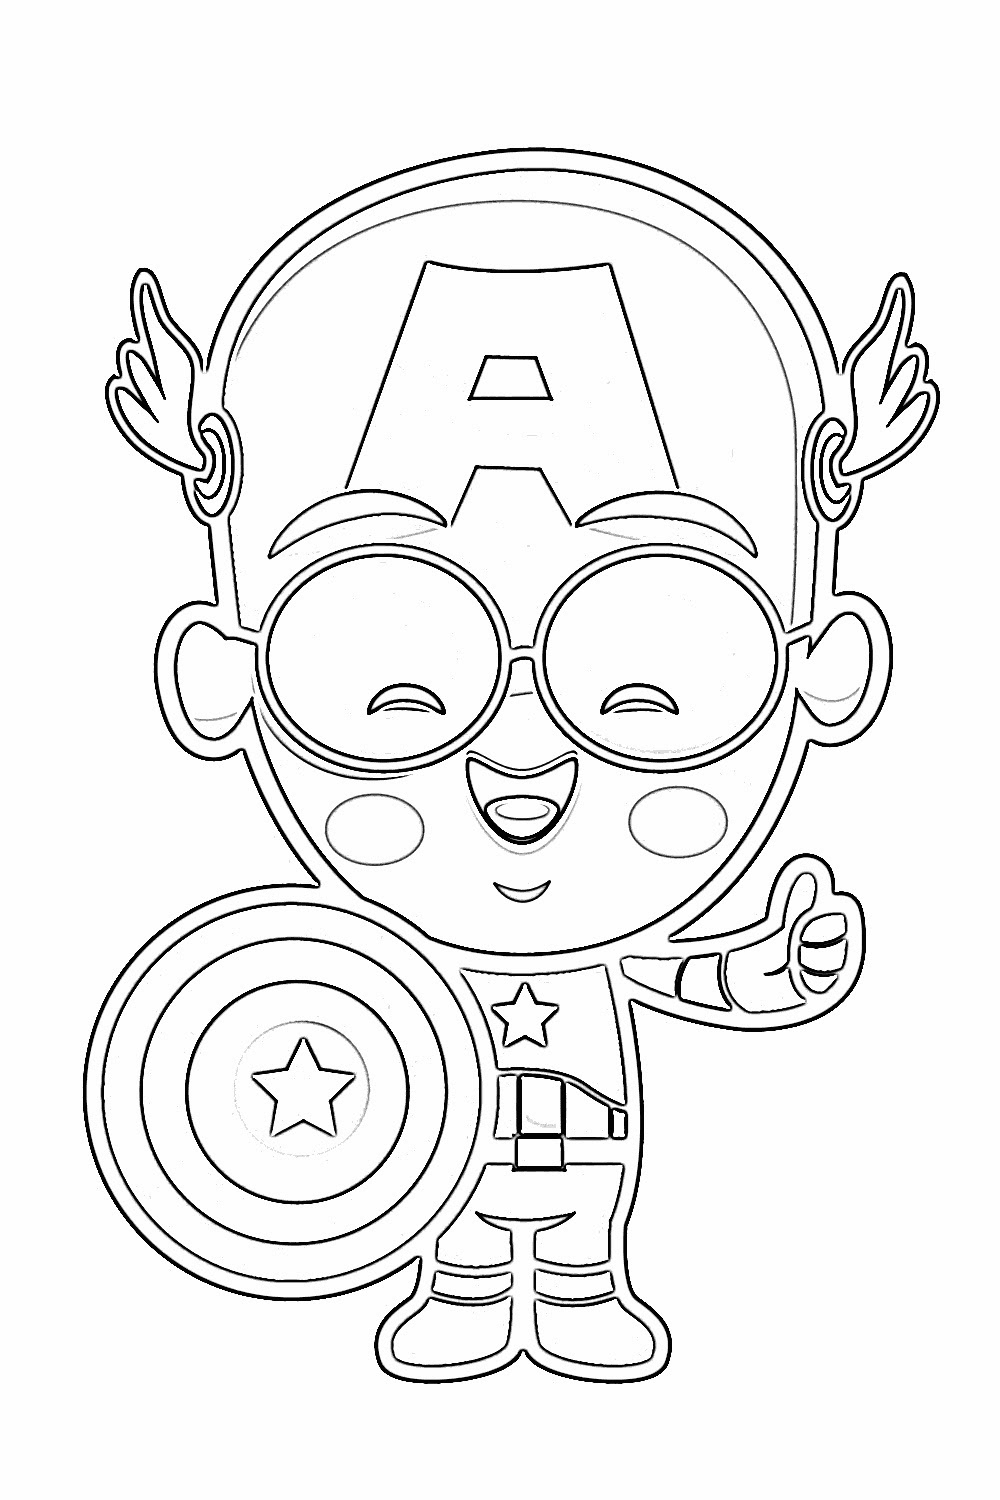 lego avengers coloring pages printable captain america lego coloring pages at getcoloringscom coloring lego printable pages avengers